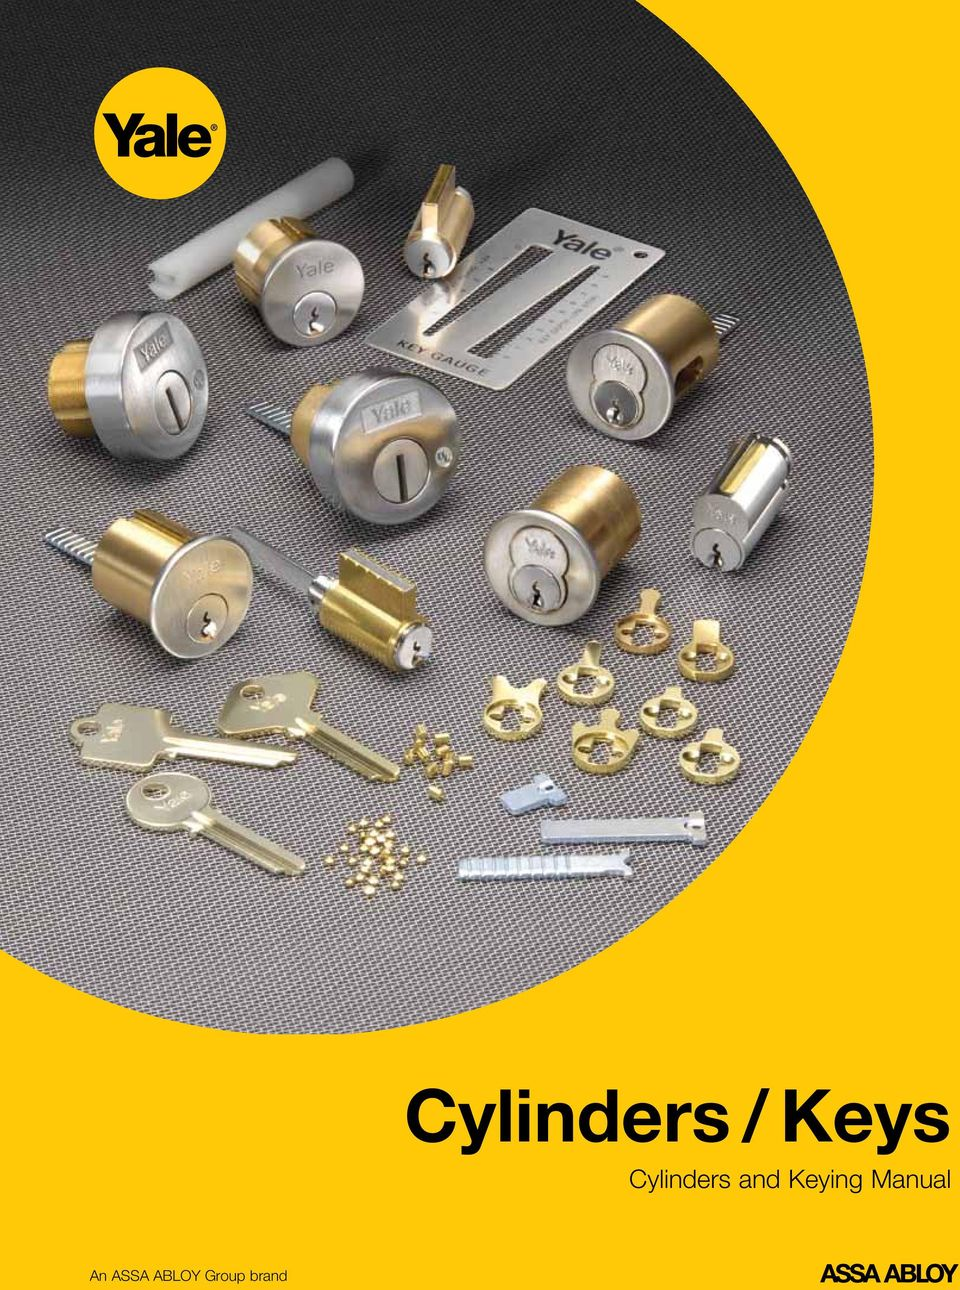 Cylinders / Keys  Cylinders and Keying Manual  An ASSA ABLOY